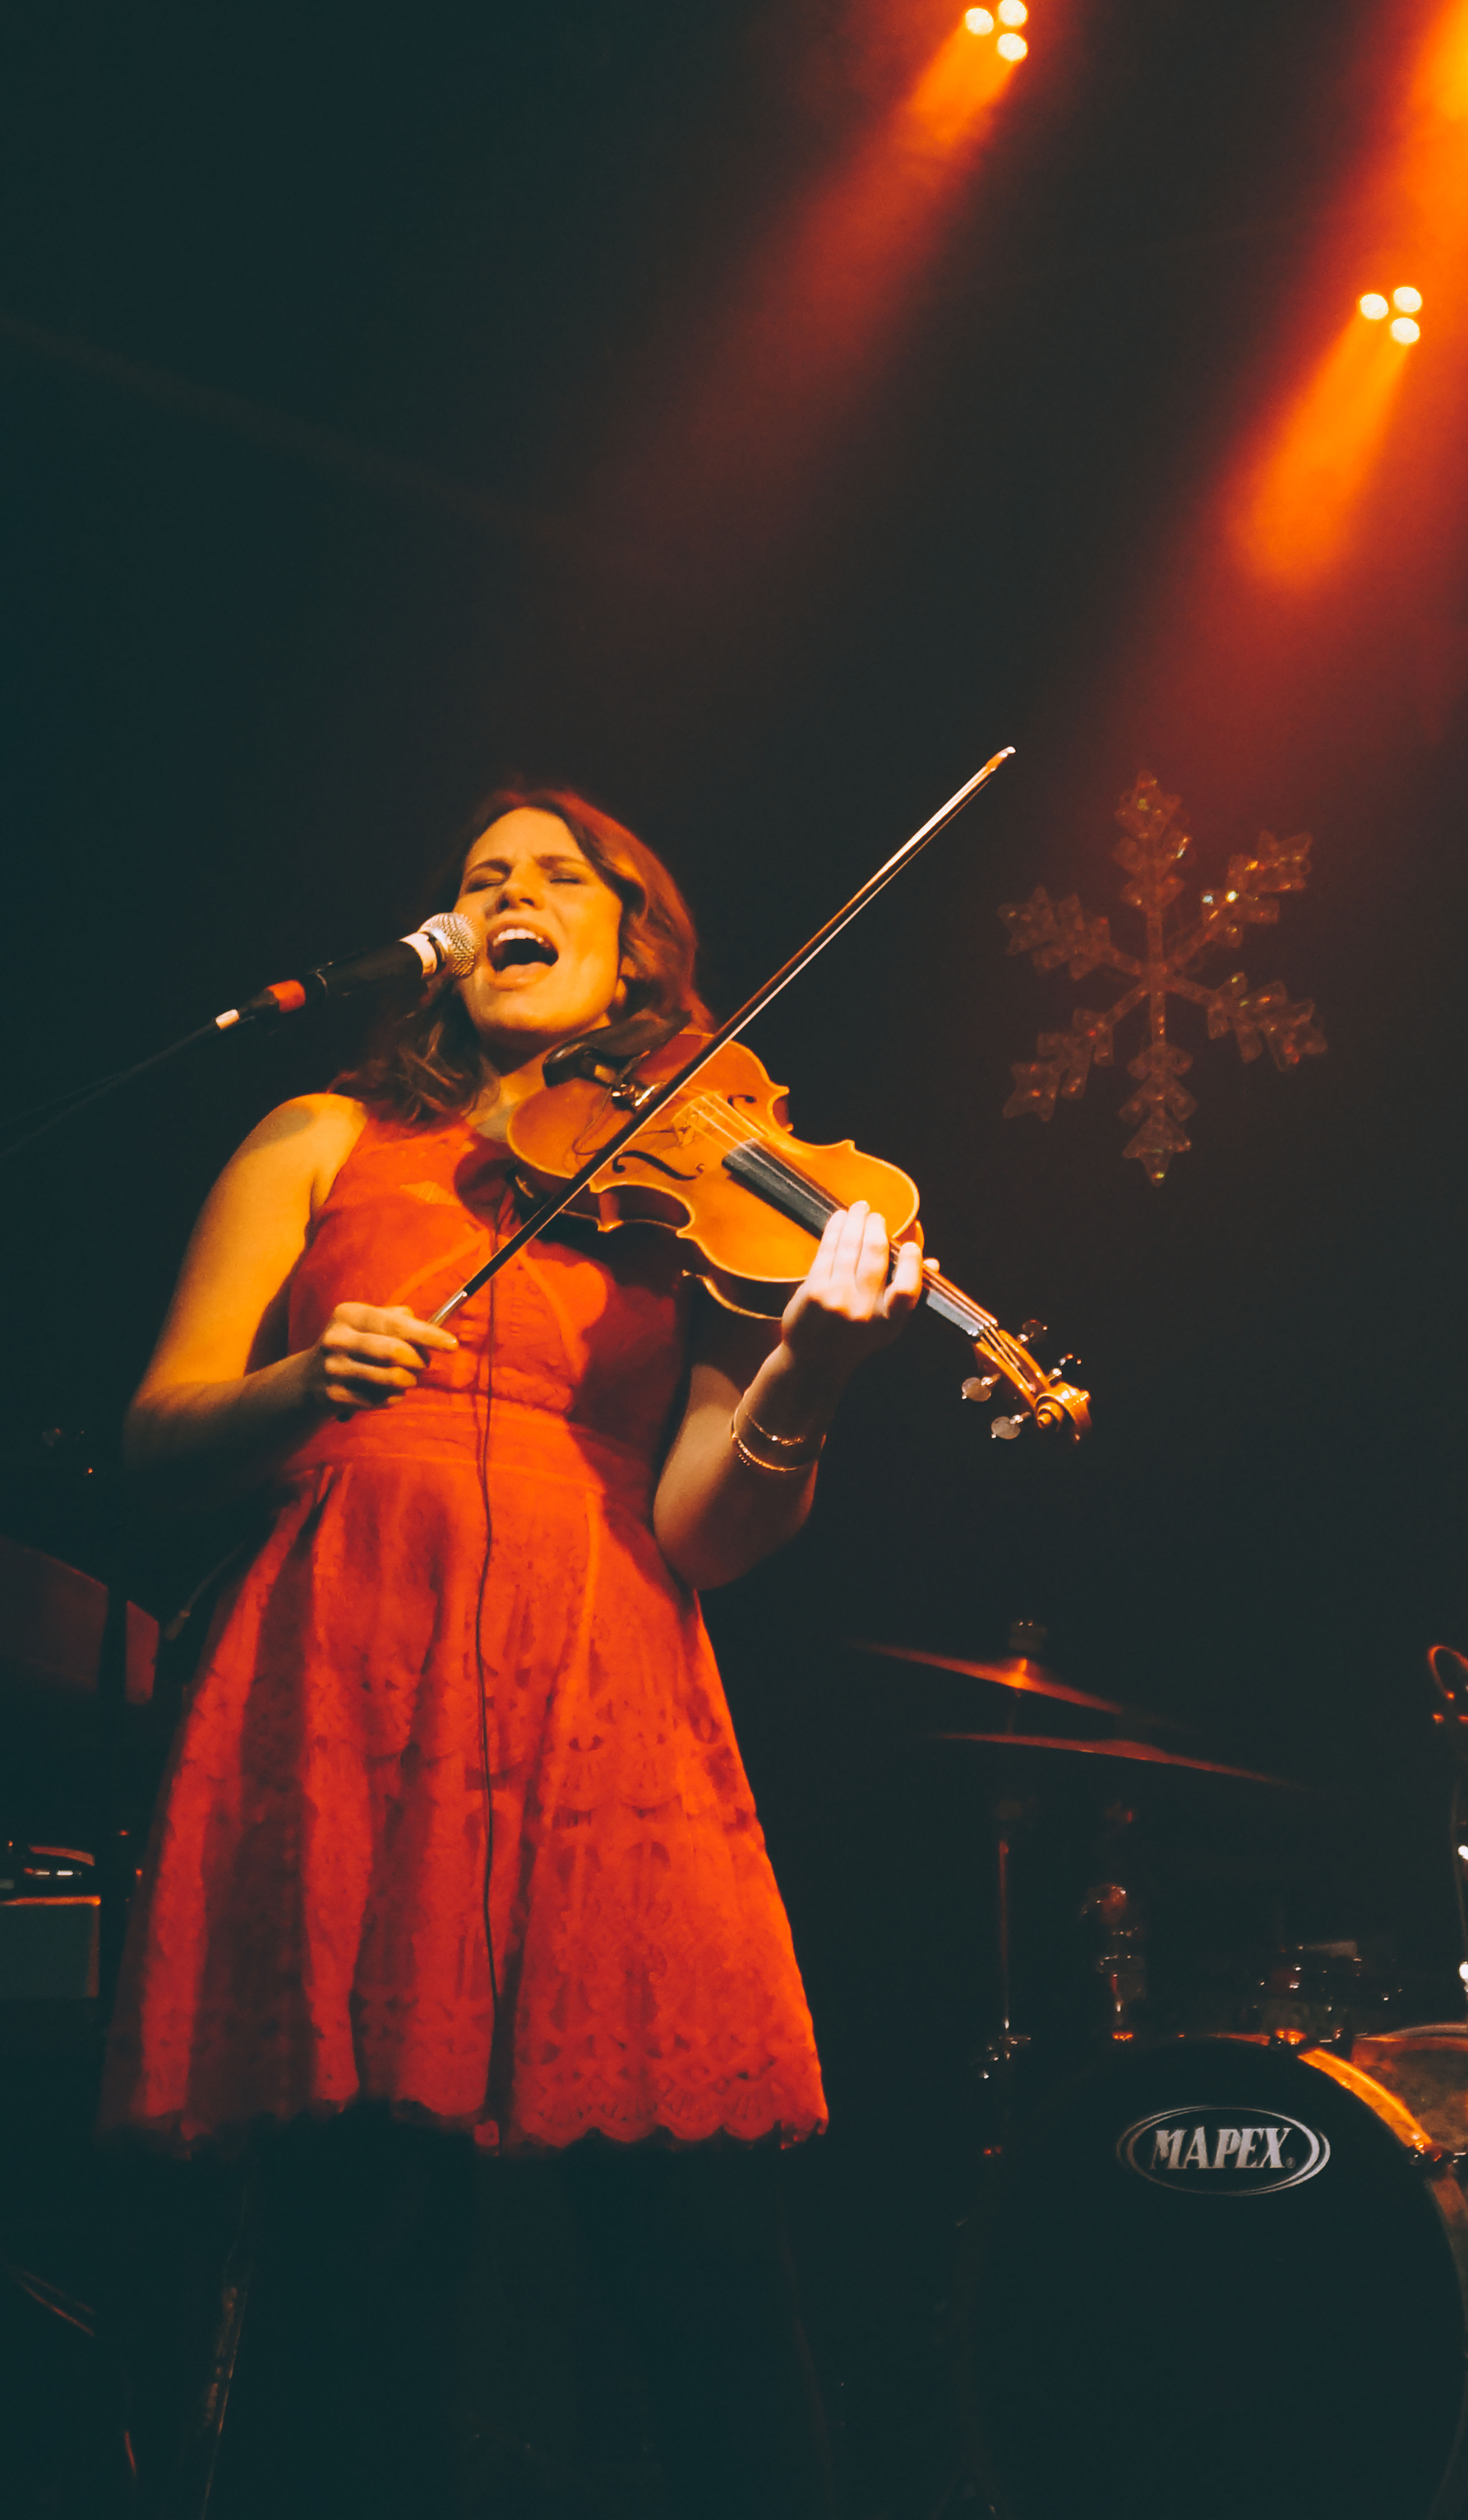 Amanda Rae Fitch Violin Fiddle Seattle Tractor 3